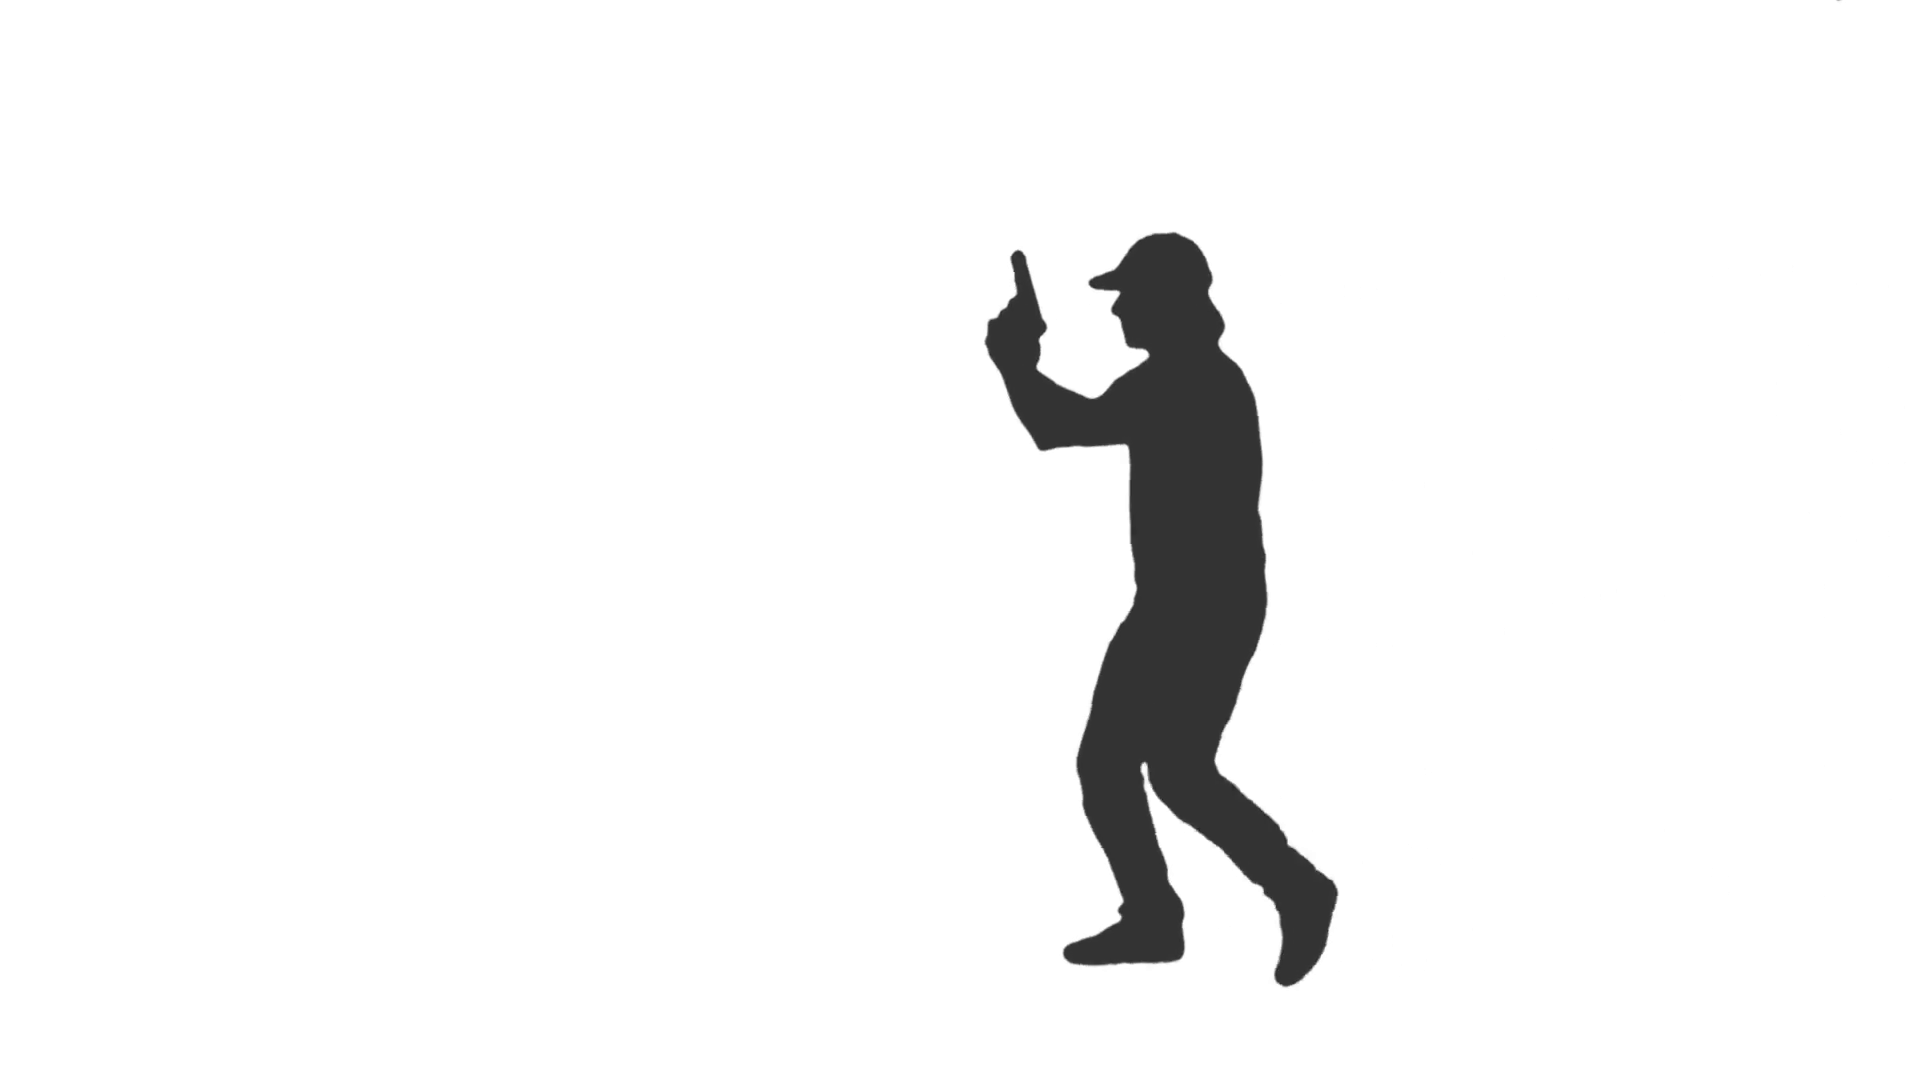 1920x1080 Silhouette Of Detective With A Gun Carefully Moving Forward. Side